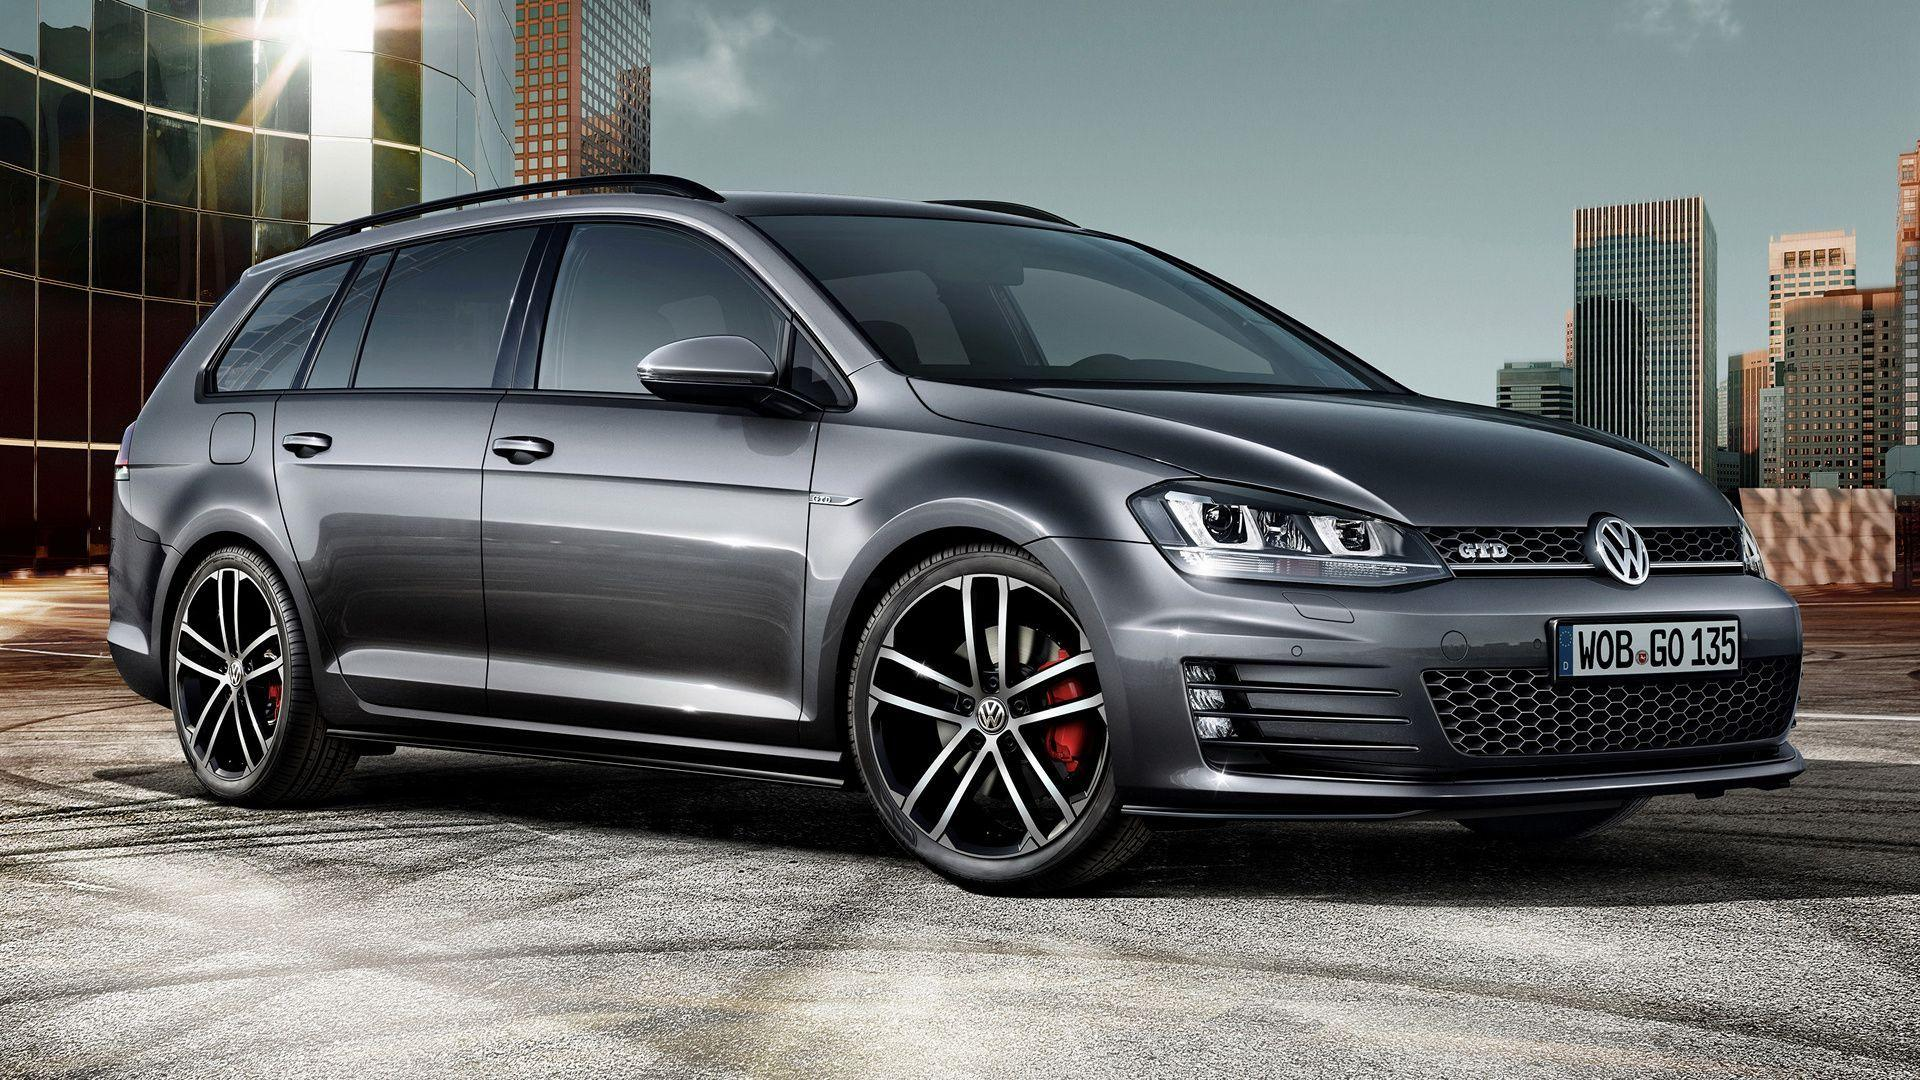 Volkswagen Golf Mk7 Wallpapers Wallpaper Cave